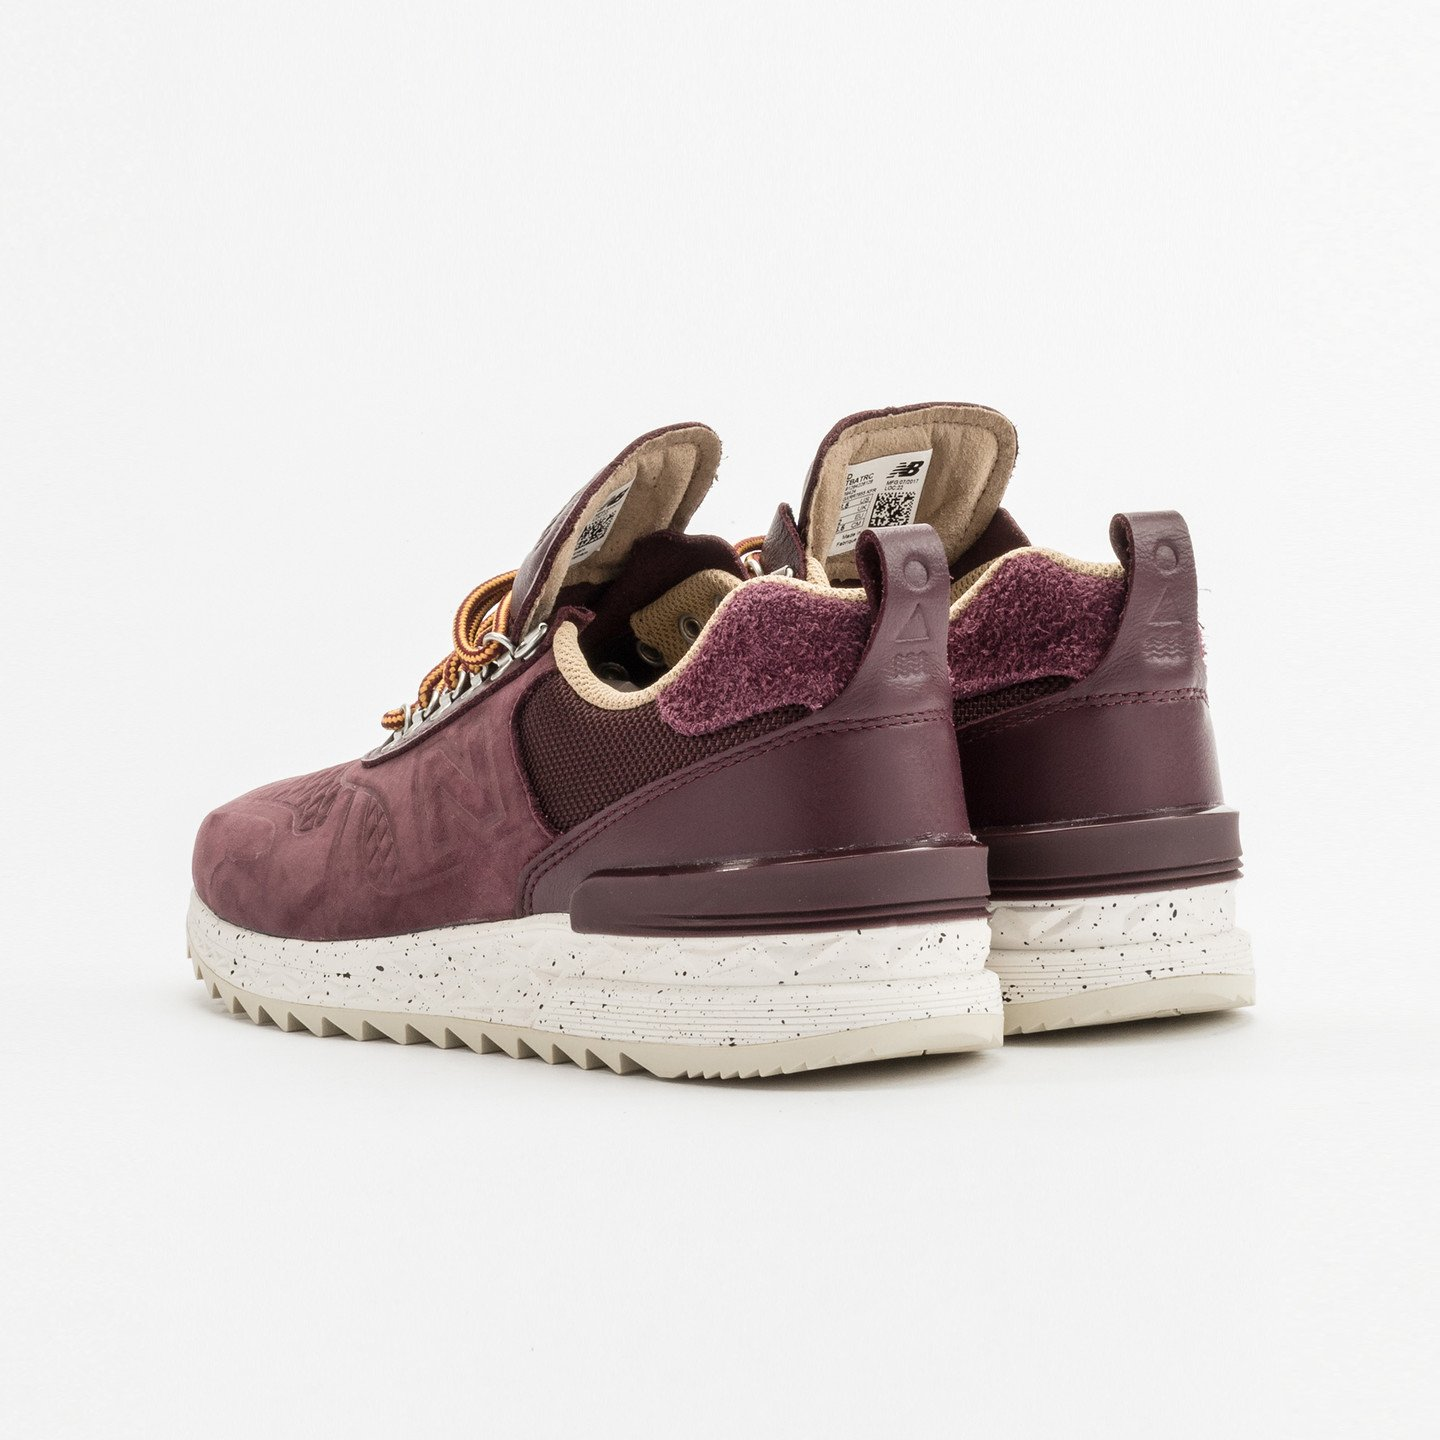 New Balance Trailbuster Burgundy / Speckled White / Off-White TBATRC